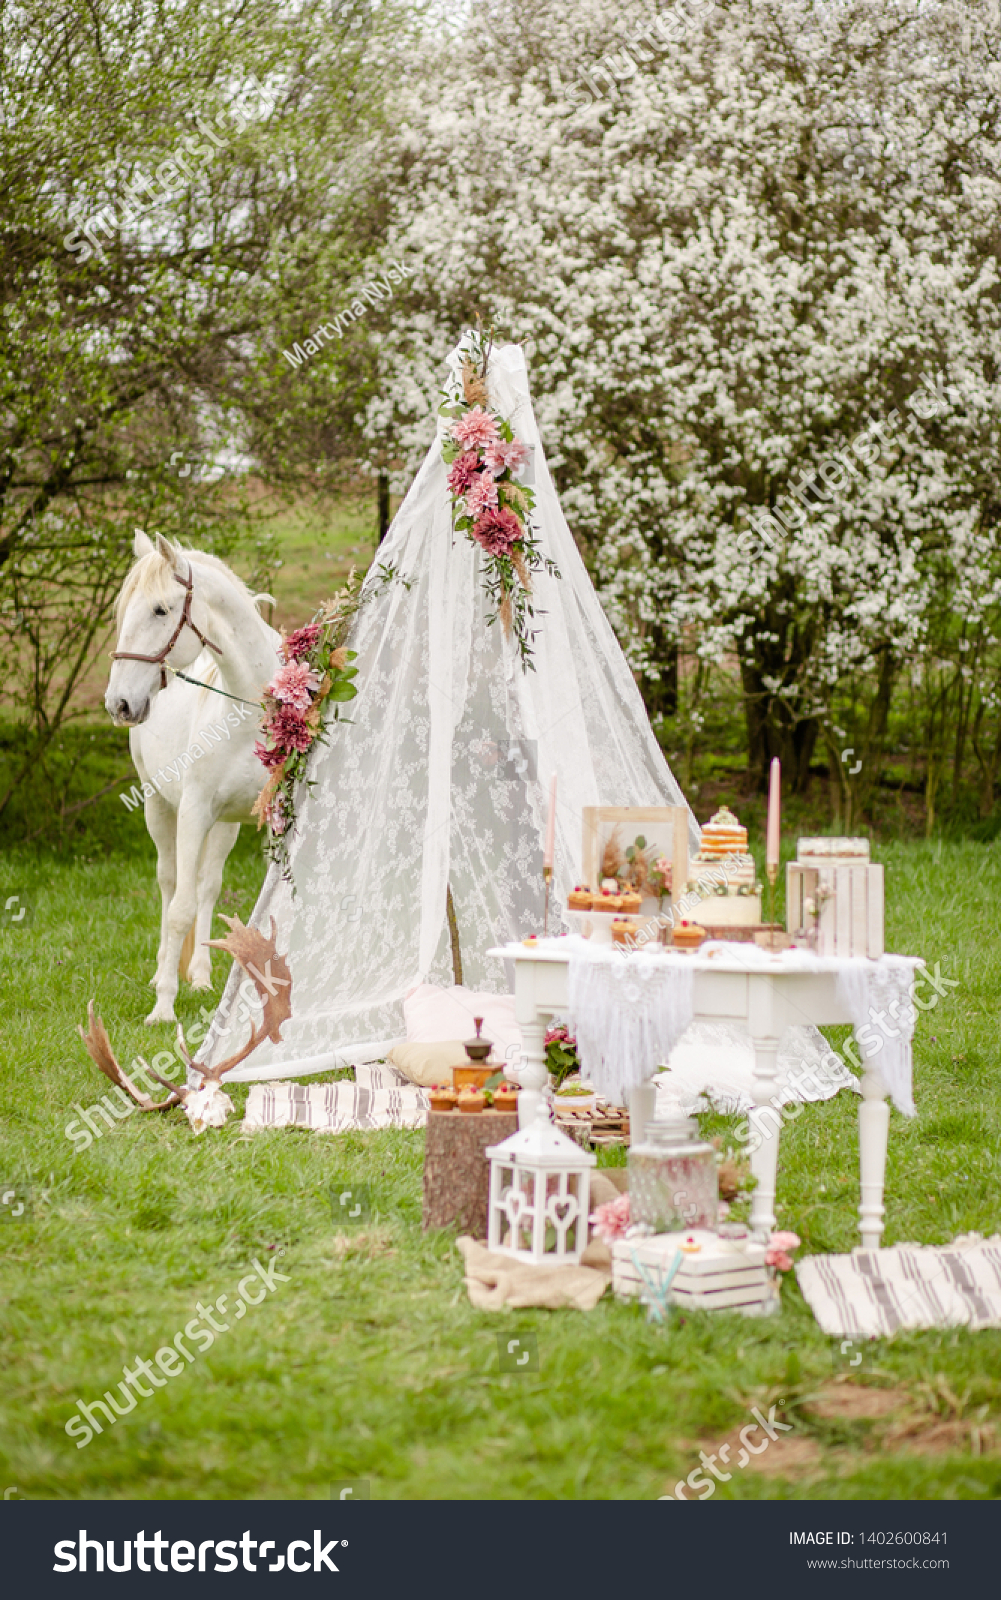 Beautiful White Horse Wedding Teepee Tent Stock Photo Edit Now 1402600841